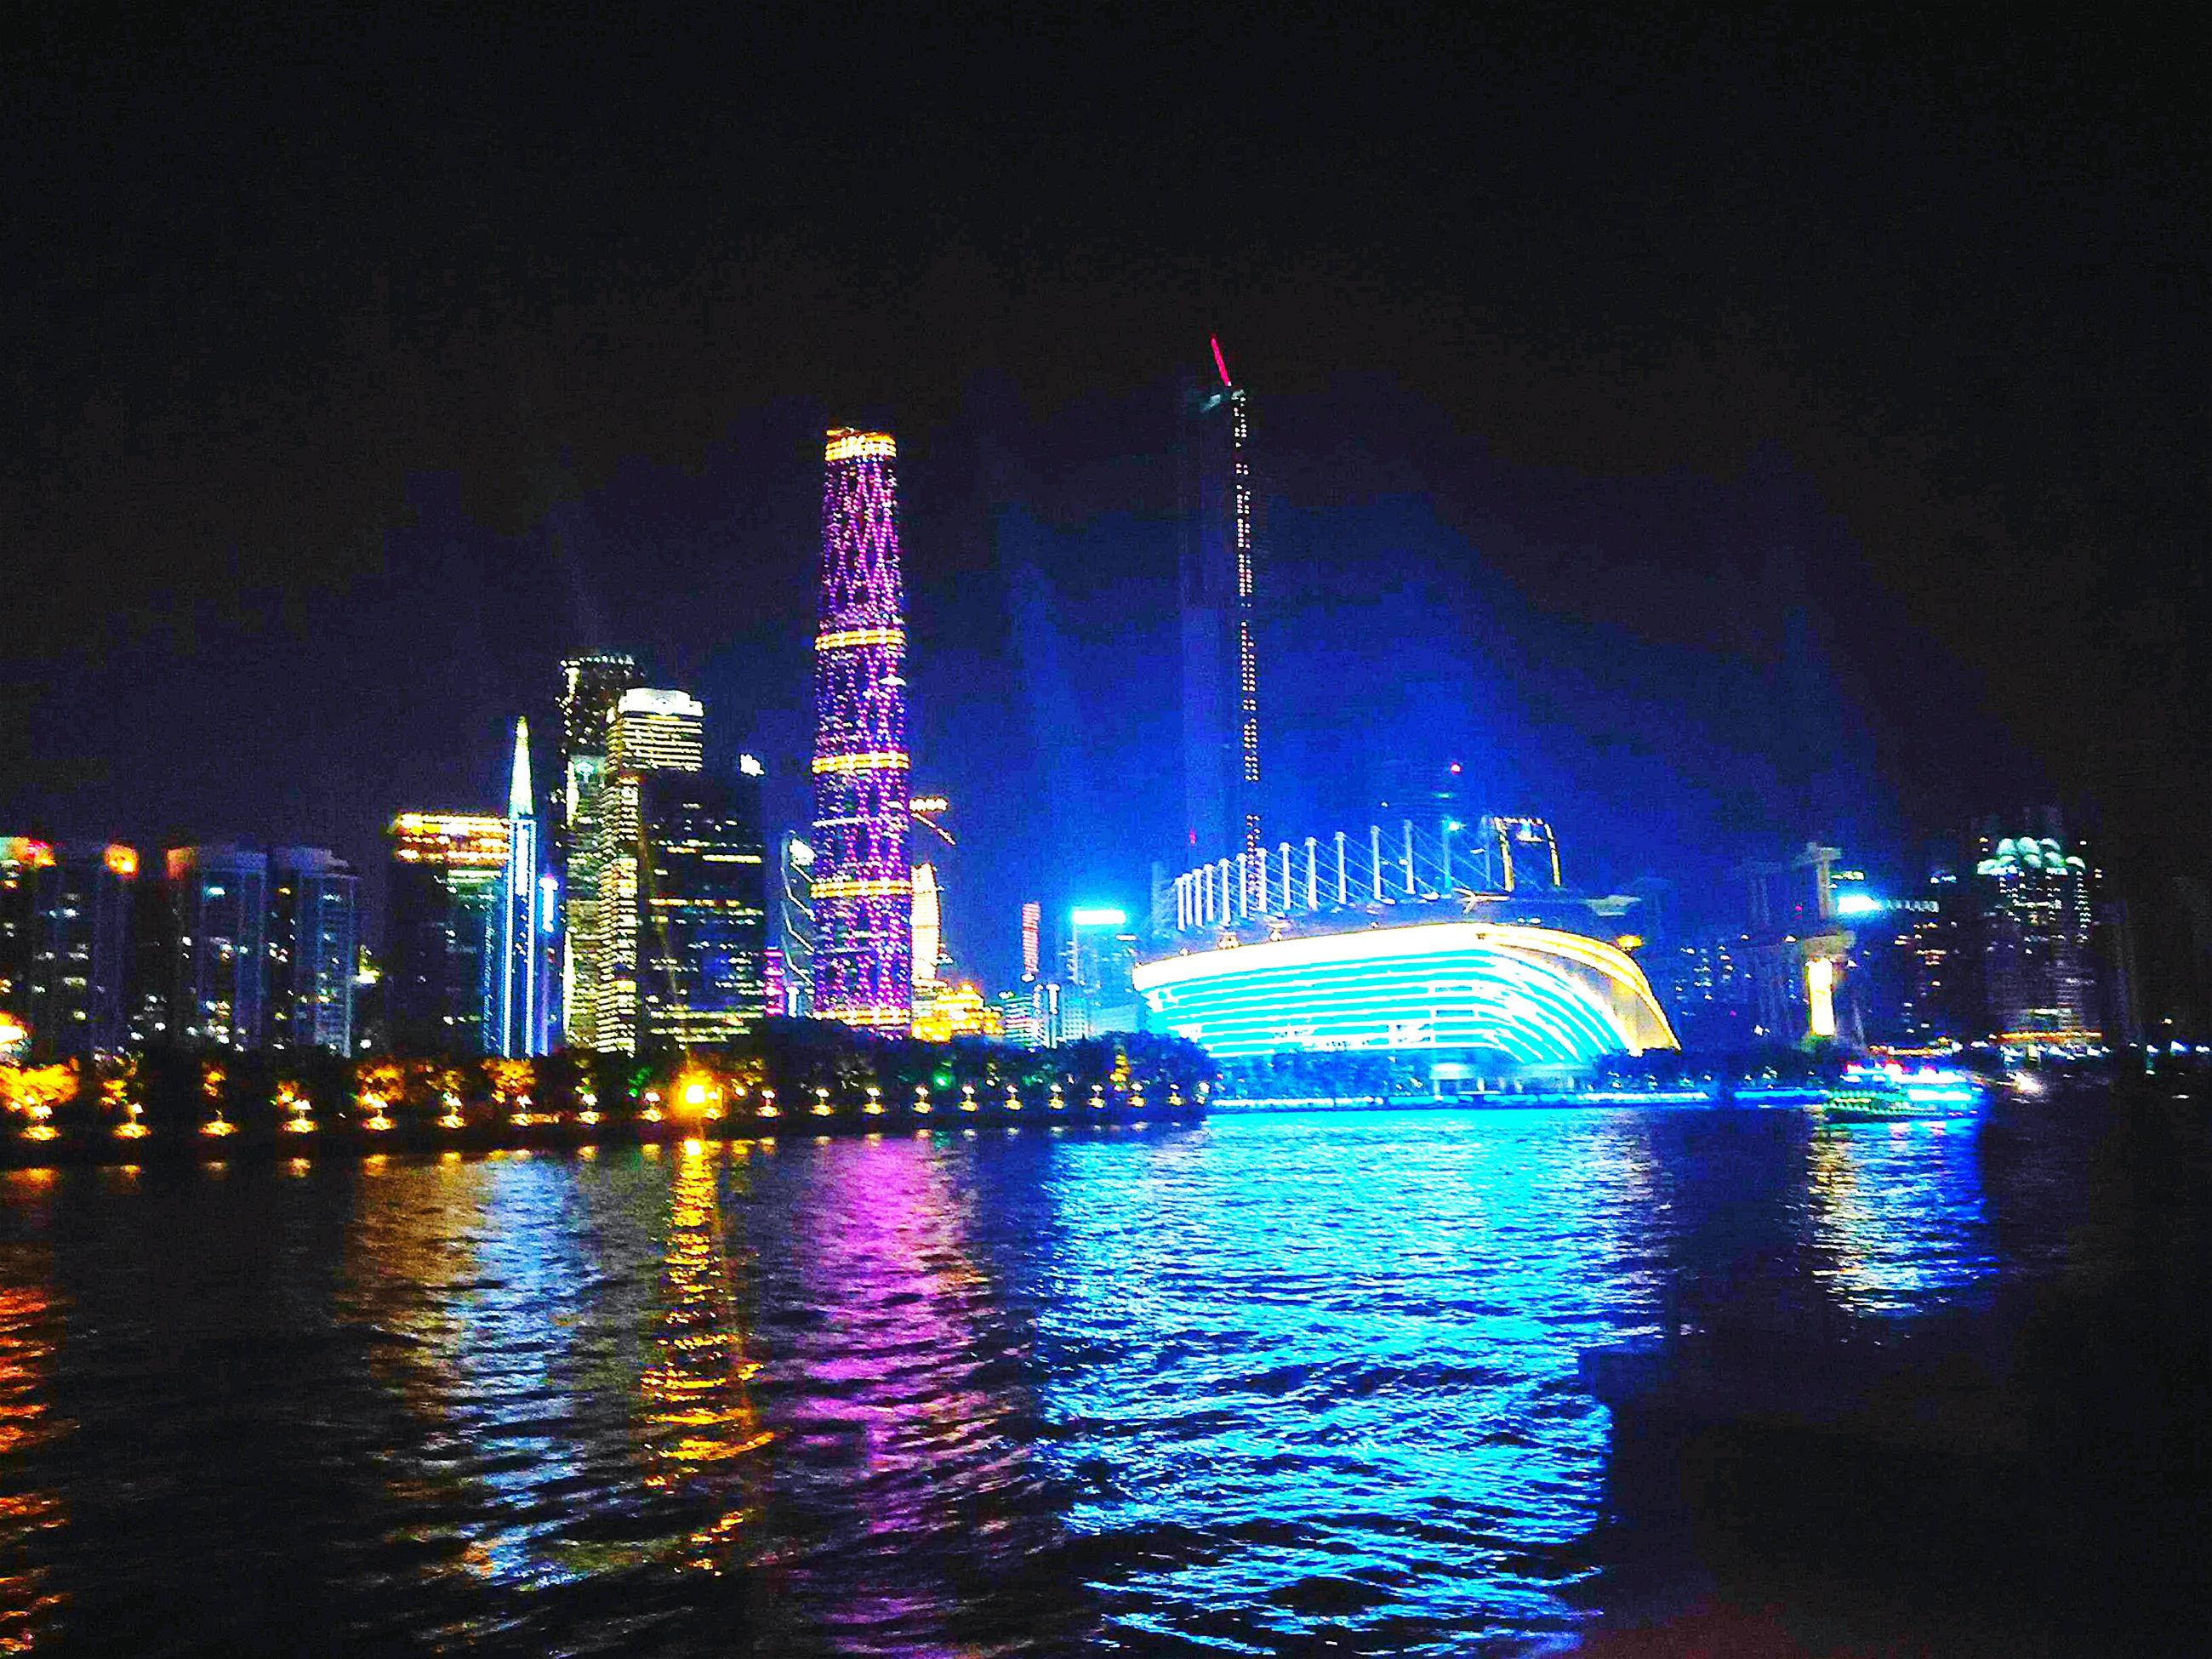 illuminated, night, water, building exterior, waterfront, architecture, built structure, city, reflection, river, sky, tall - high, skyscraper, sea, cityscape, tower, outdoors, city life, lighting equipment, modern